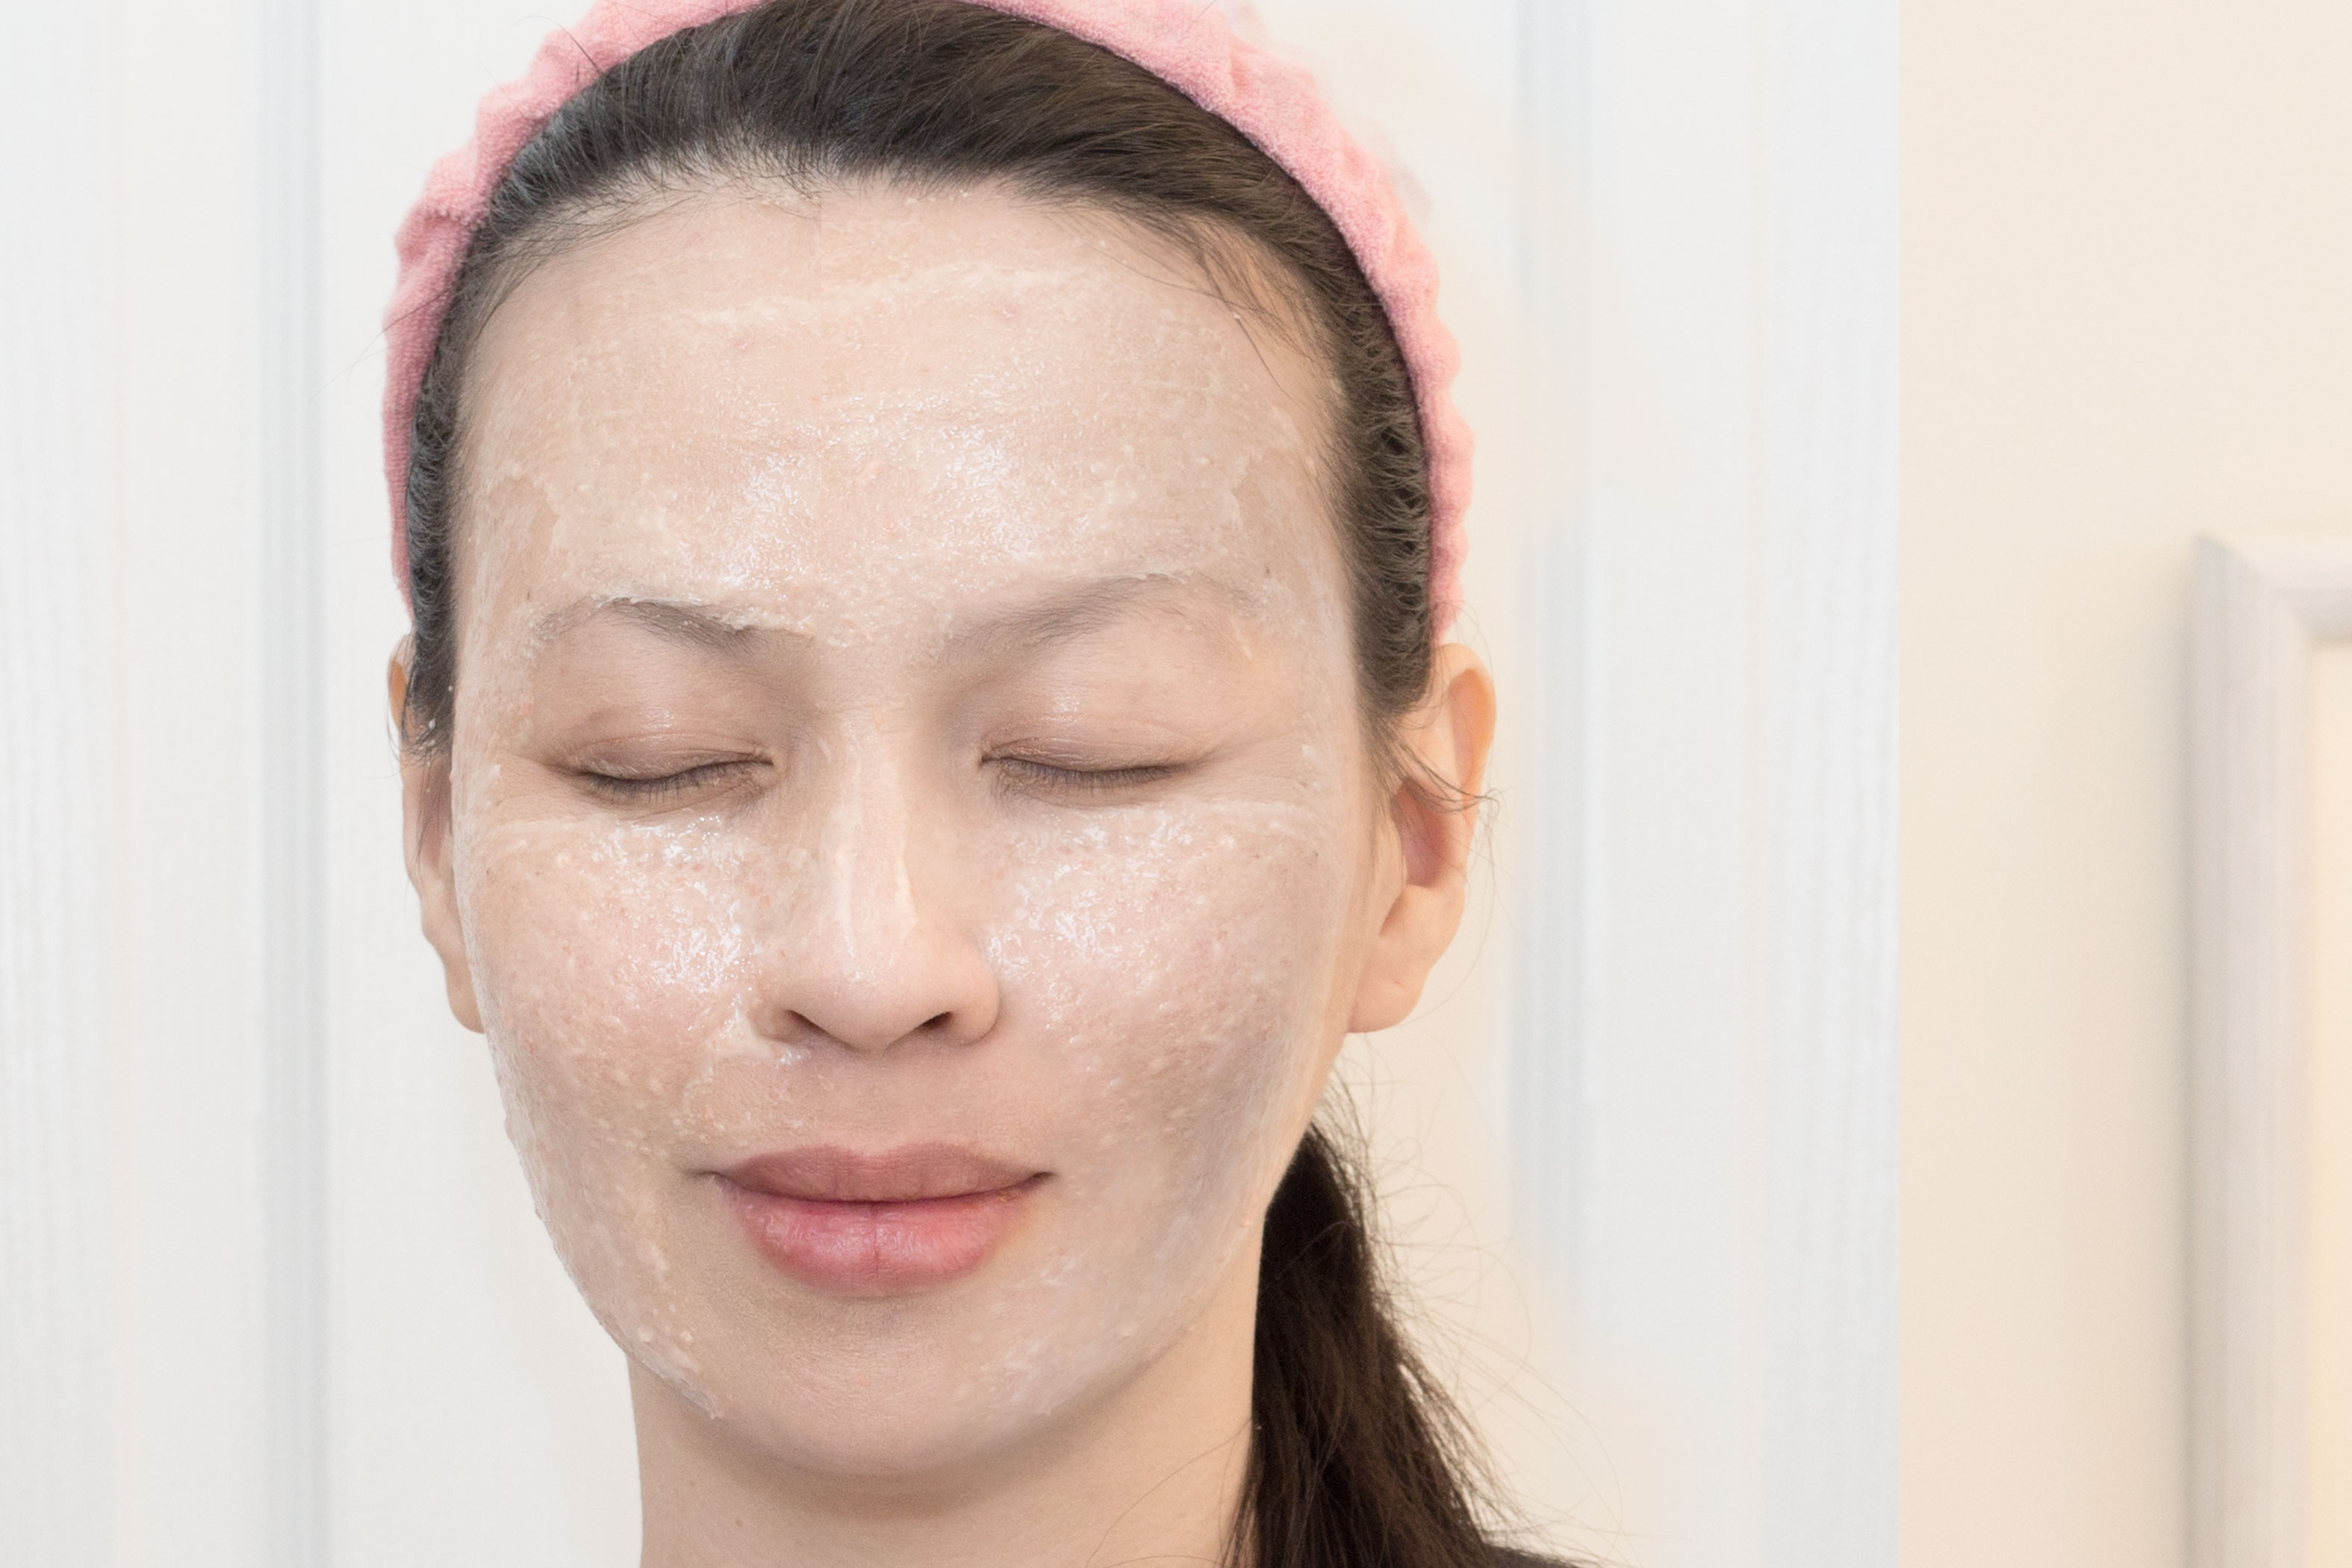 There are Rehydrating facial mask